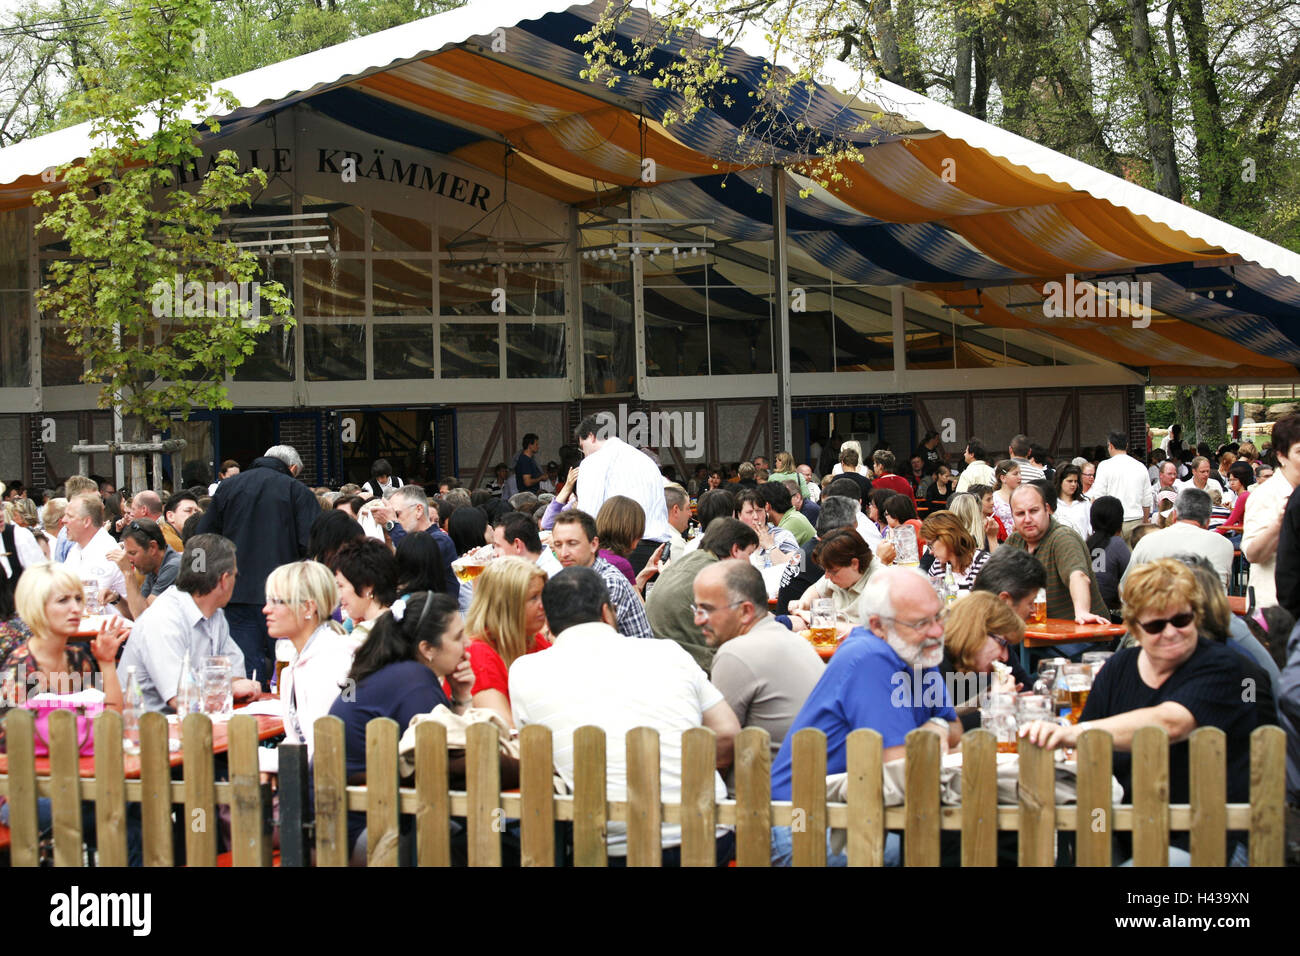 Germany, Lower Bavaria, Landshut, public festival, beer garden, visitor, no model release, Bavarians, fair, Dult, - Stock Image